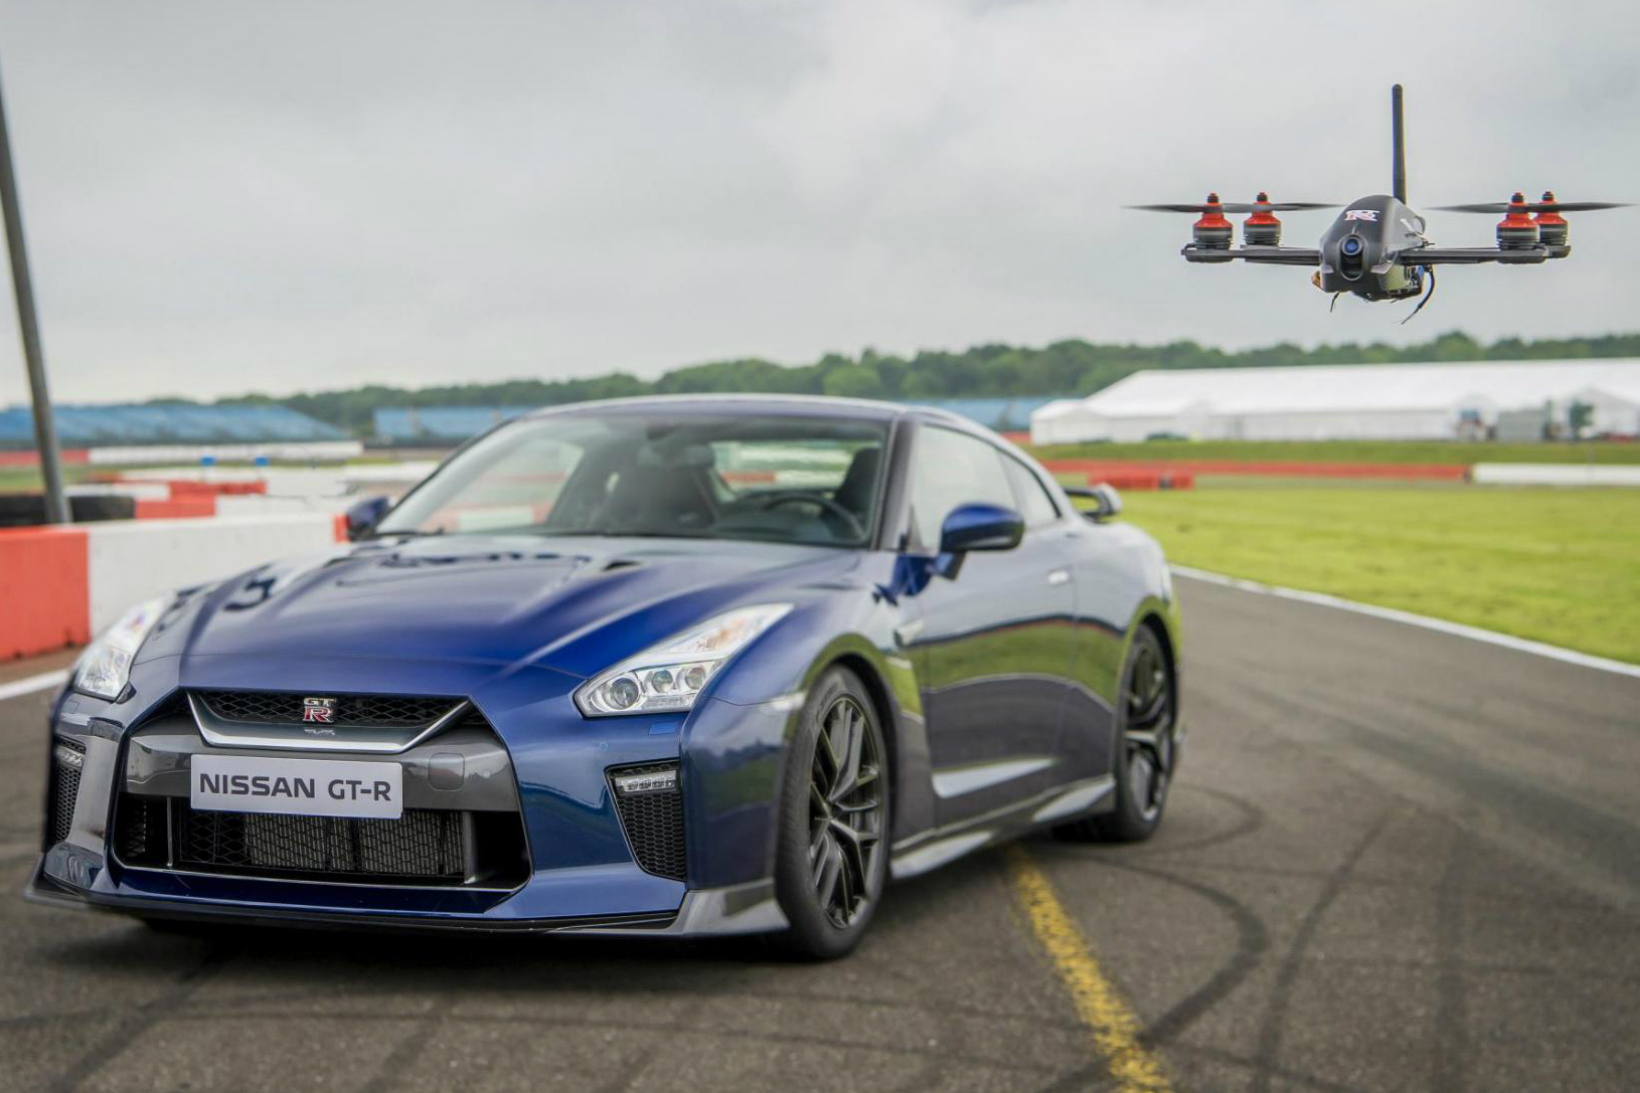 nissan new gt r drone races a 2017 gt r car hypebeast. Black Bedroom Furniture Sets. Home Design Ideas